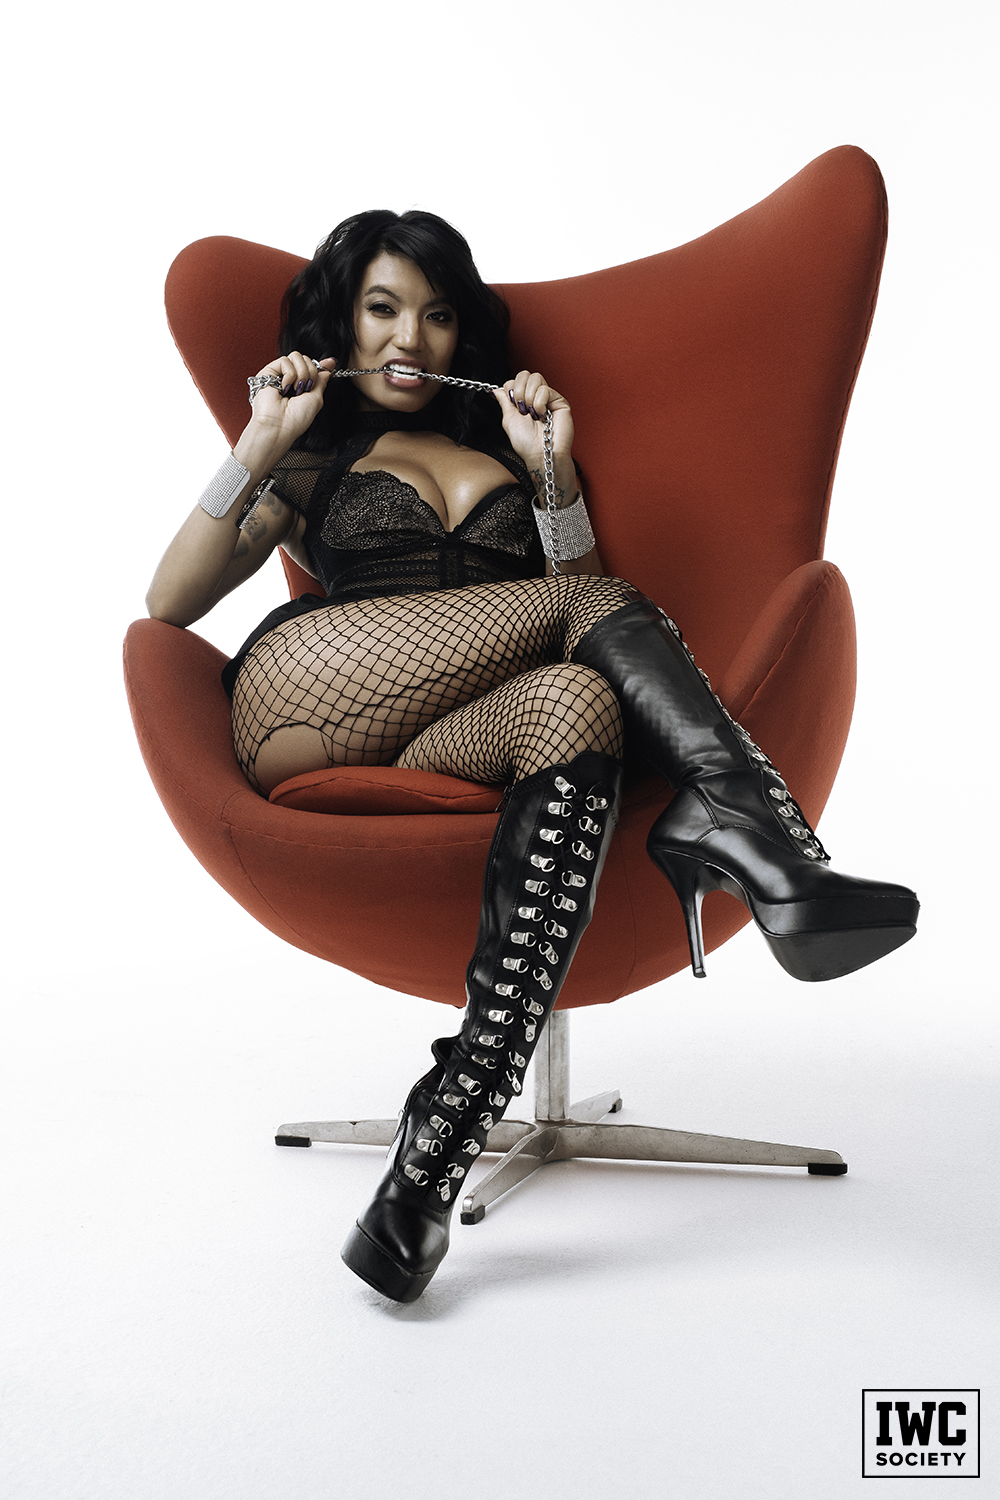 asian domme Asia Perez sitting cross-legged in black fishnets biting the chain of her male slave's collar